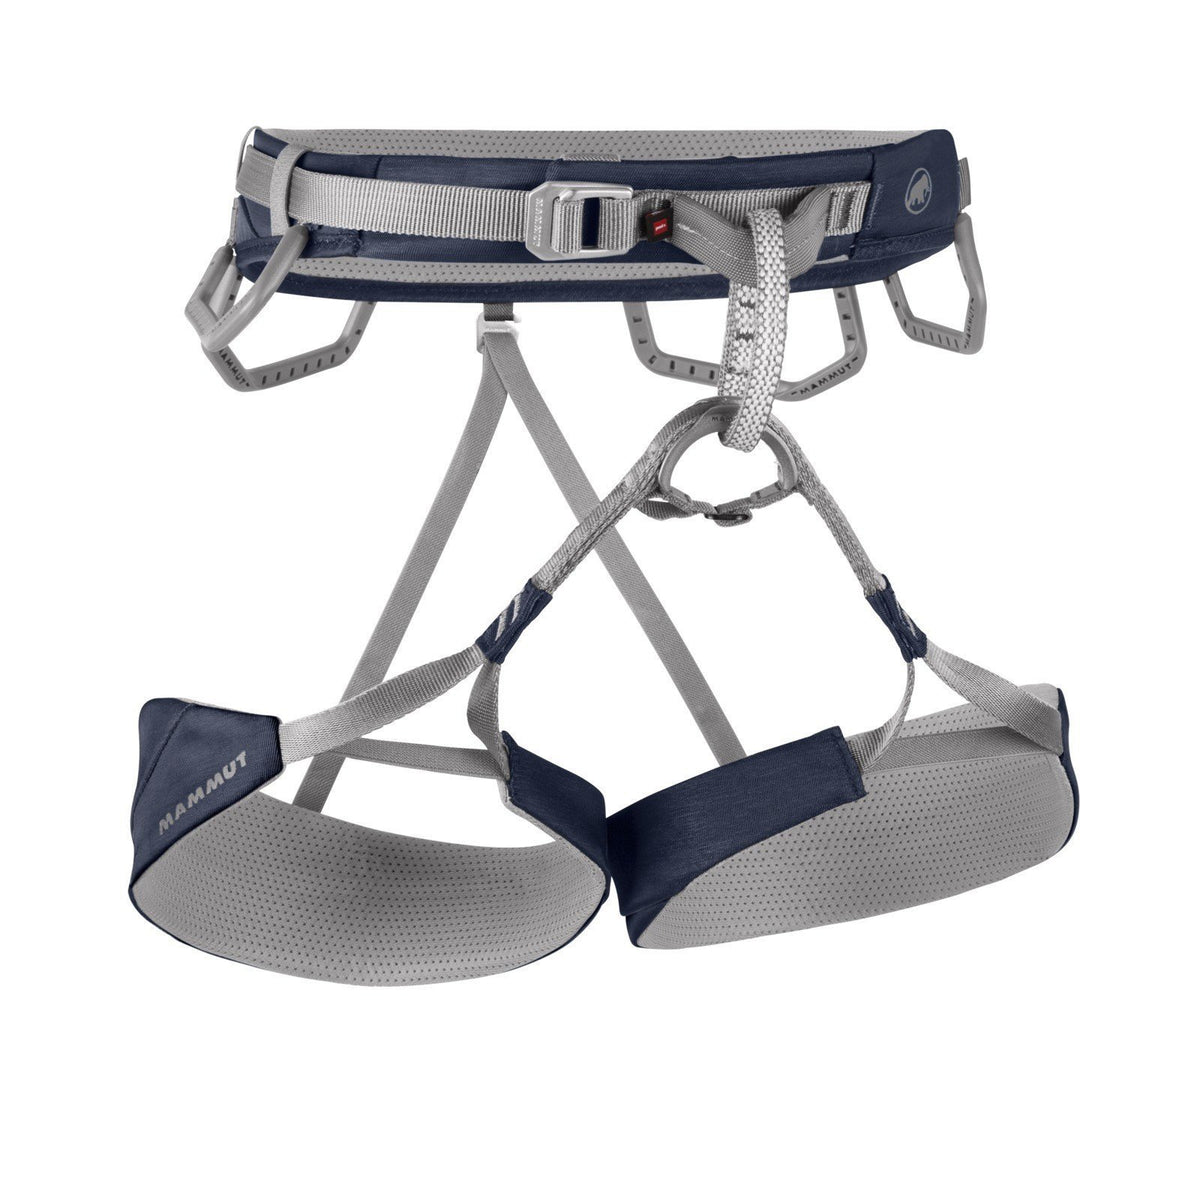 Mammut Togir Harness, front view in denim blue and grey colours